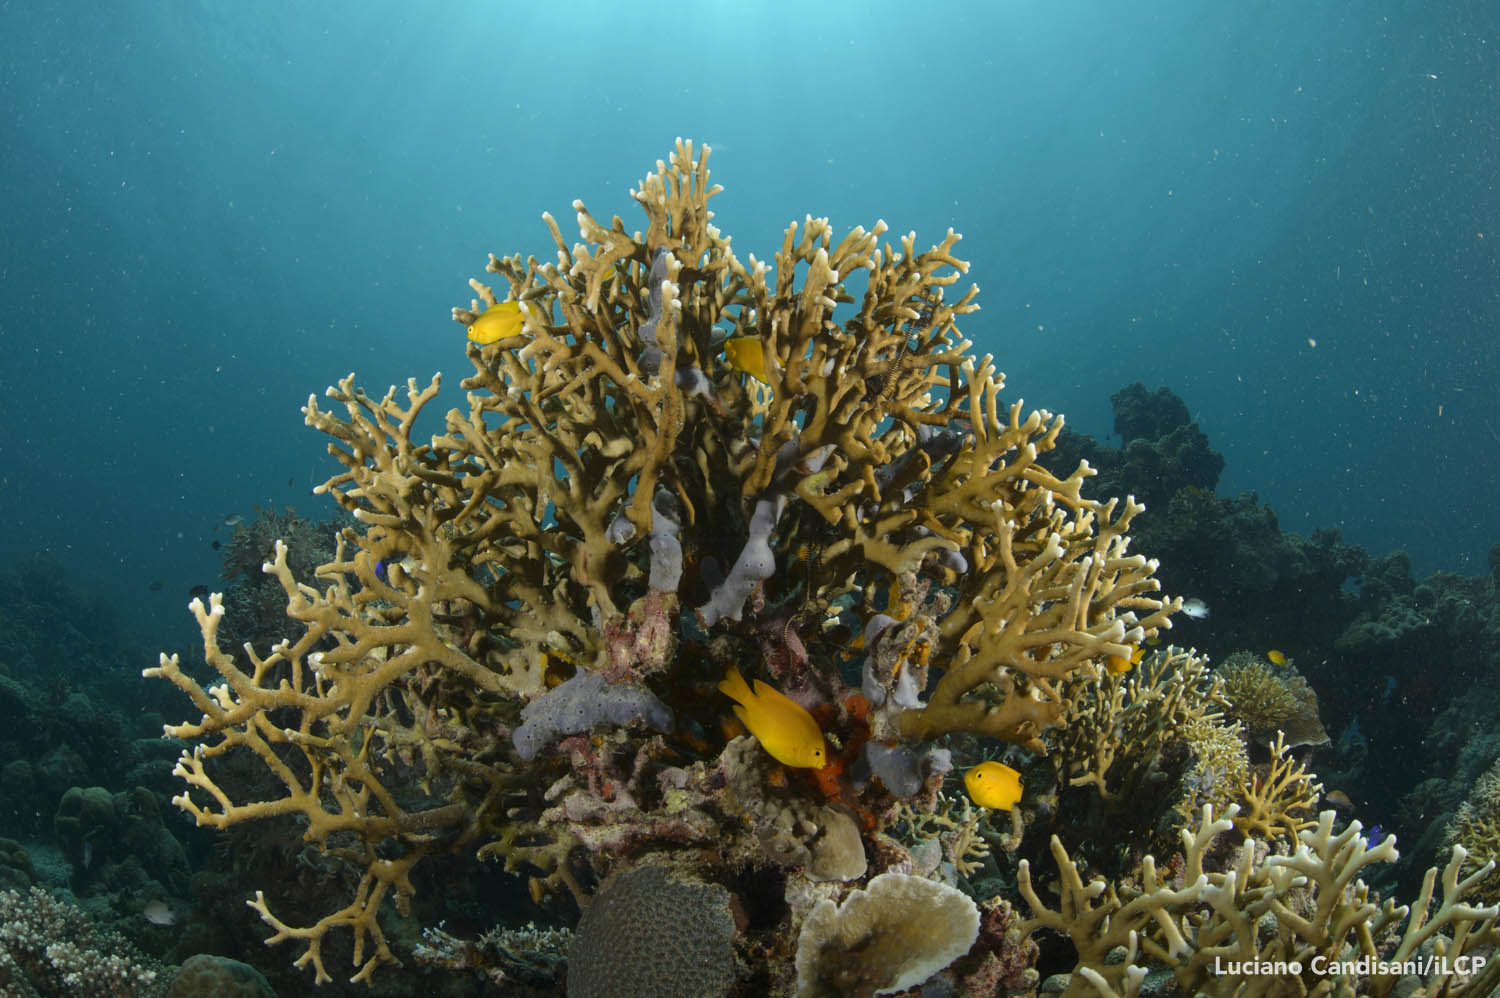 Danajon Bank is home to a dizzying array of fishes, corals, and gastropods. Because of overfishing, however, many sections of the reef have few animals. Luciano Candisani/iLCP